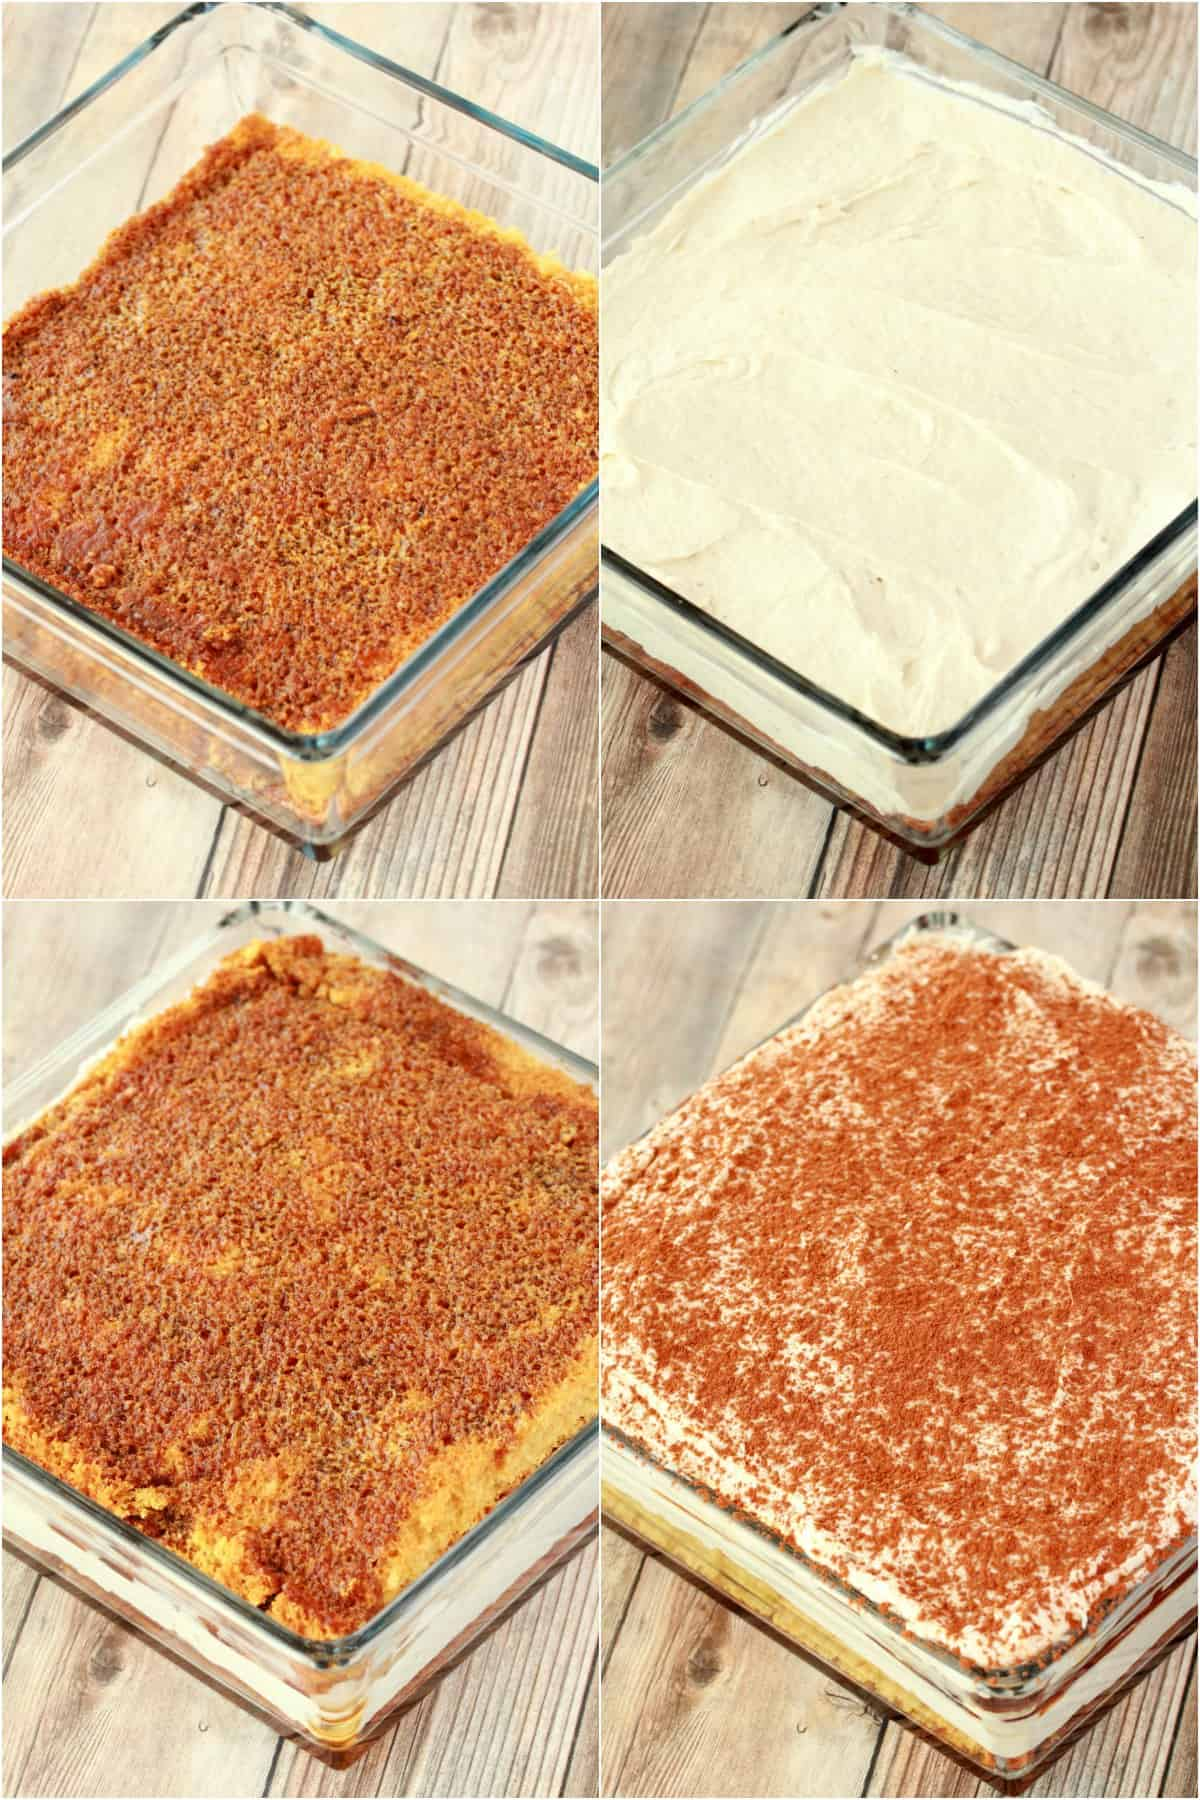 Step by step process photo collage of assembling vegan tiramisu.